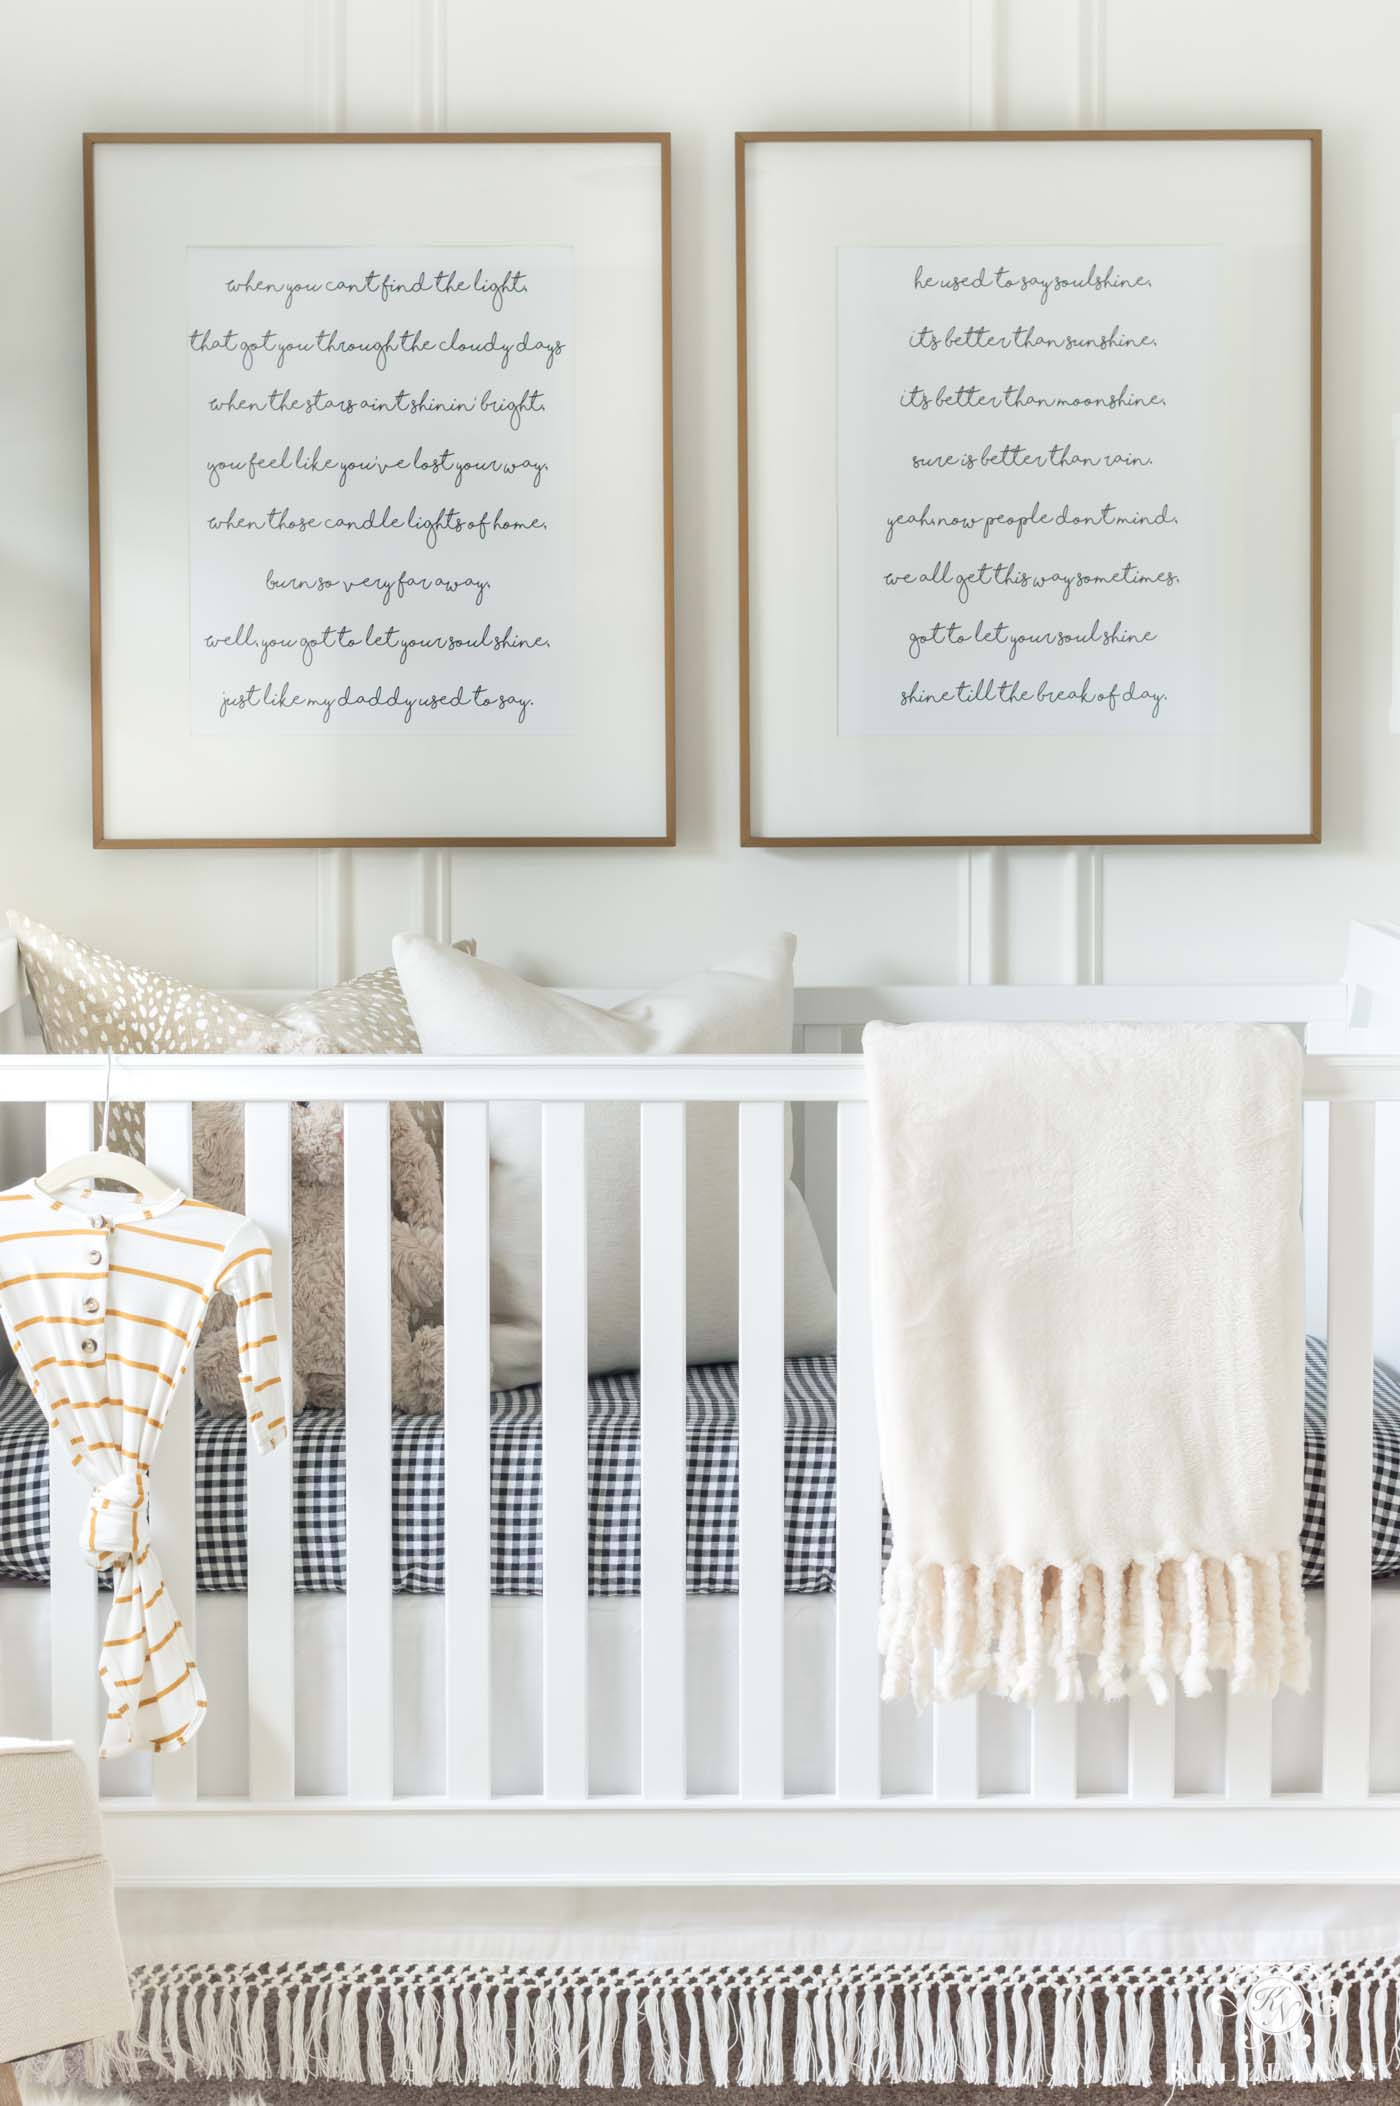 Framed song lyrics above the nursery crib